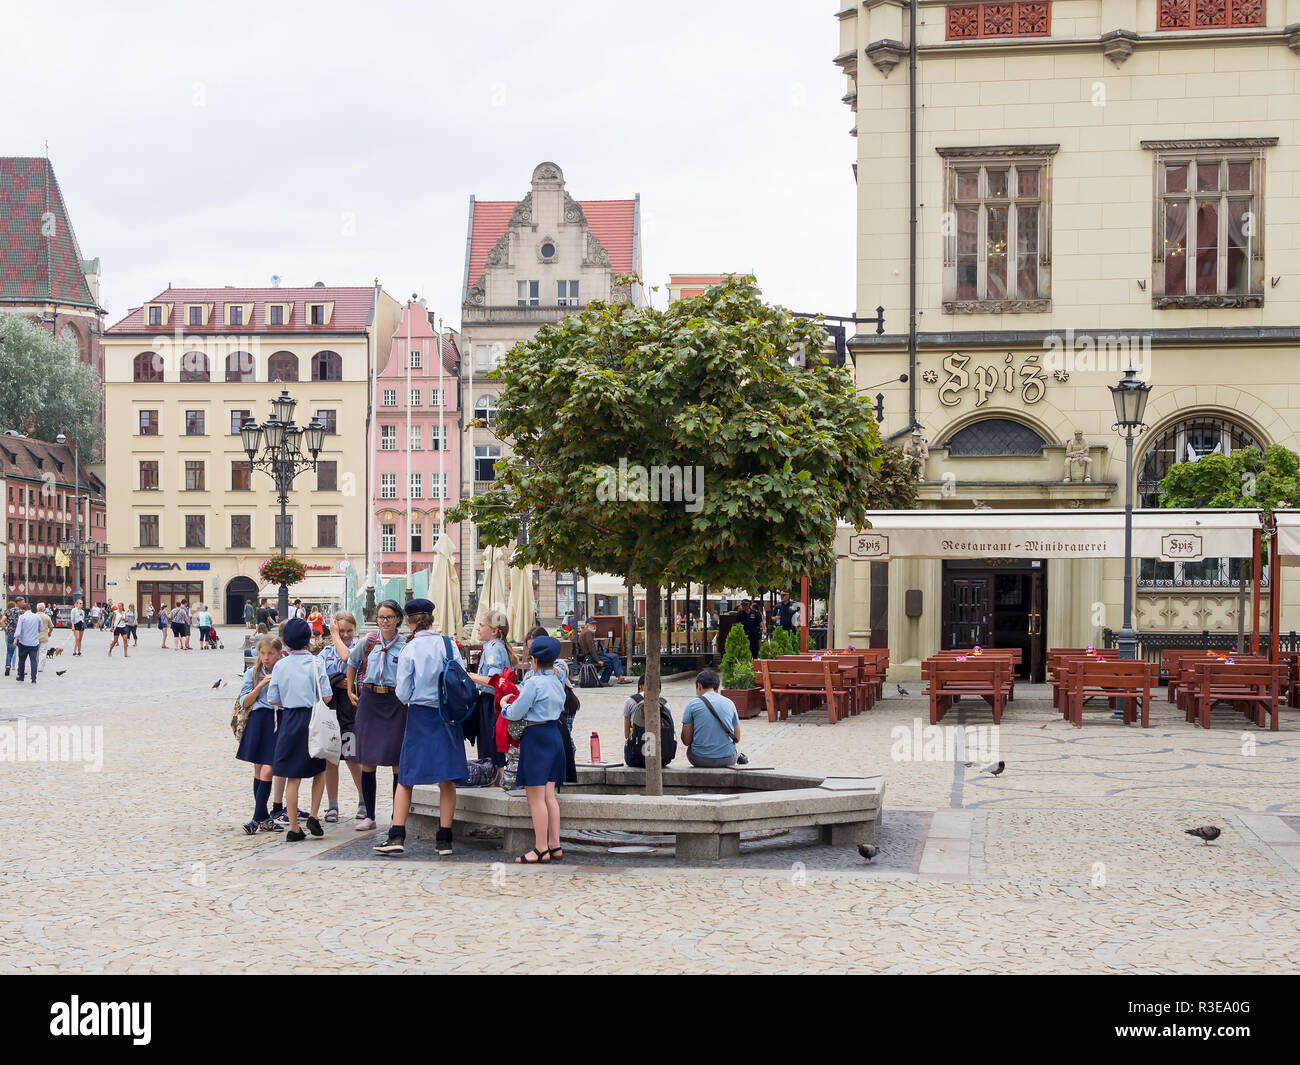 WROCLAW, POLAND - AUGUST 16, 2017: Polish Girl Guides At Rynek Market Square In Wroclaw - Stock Image